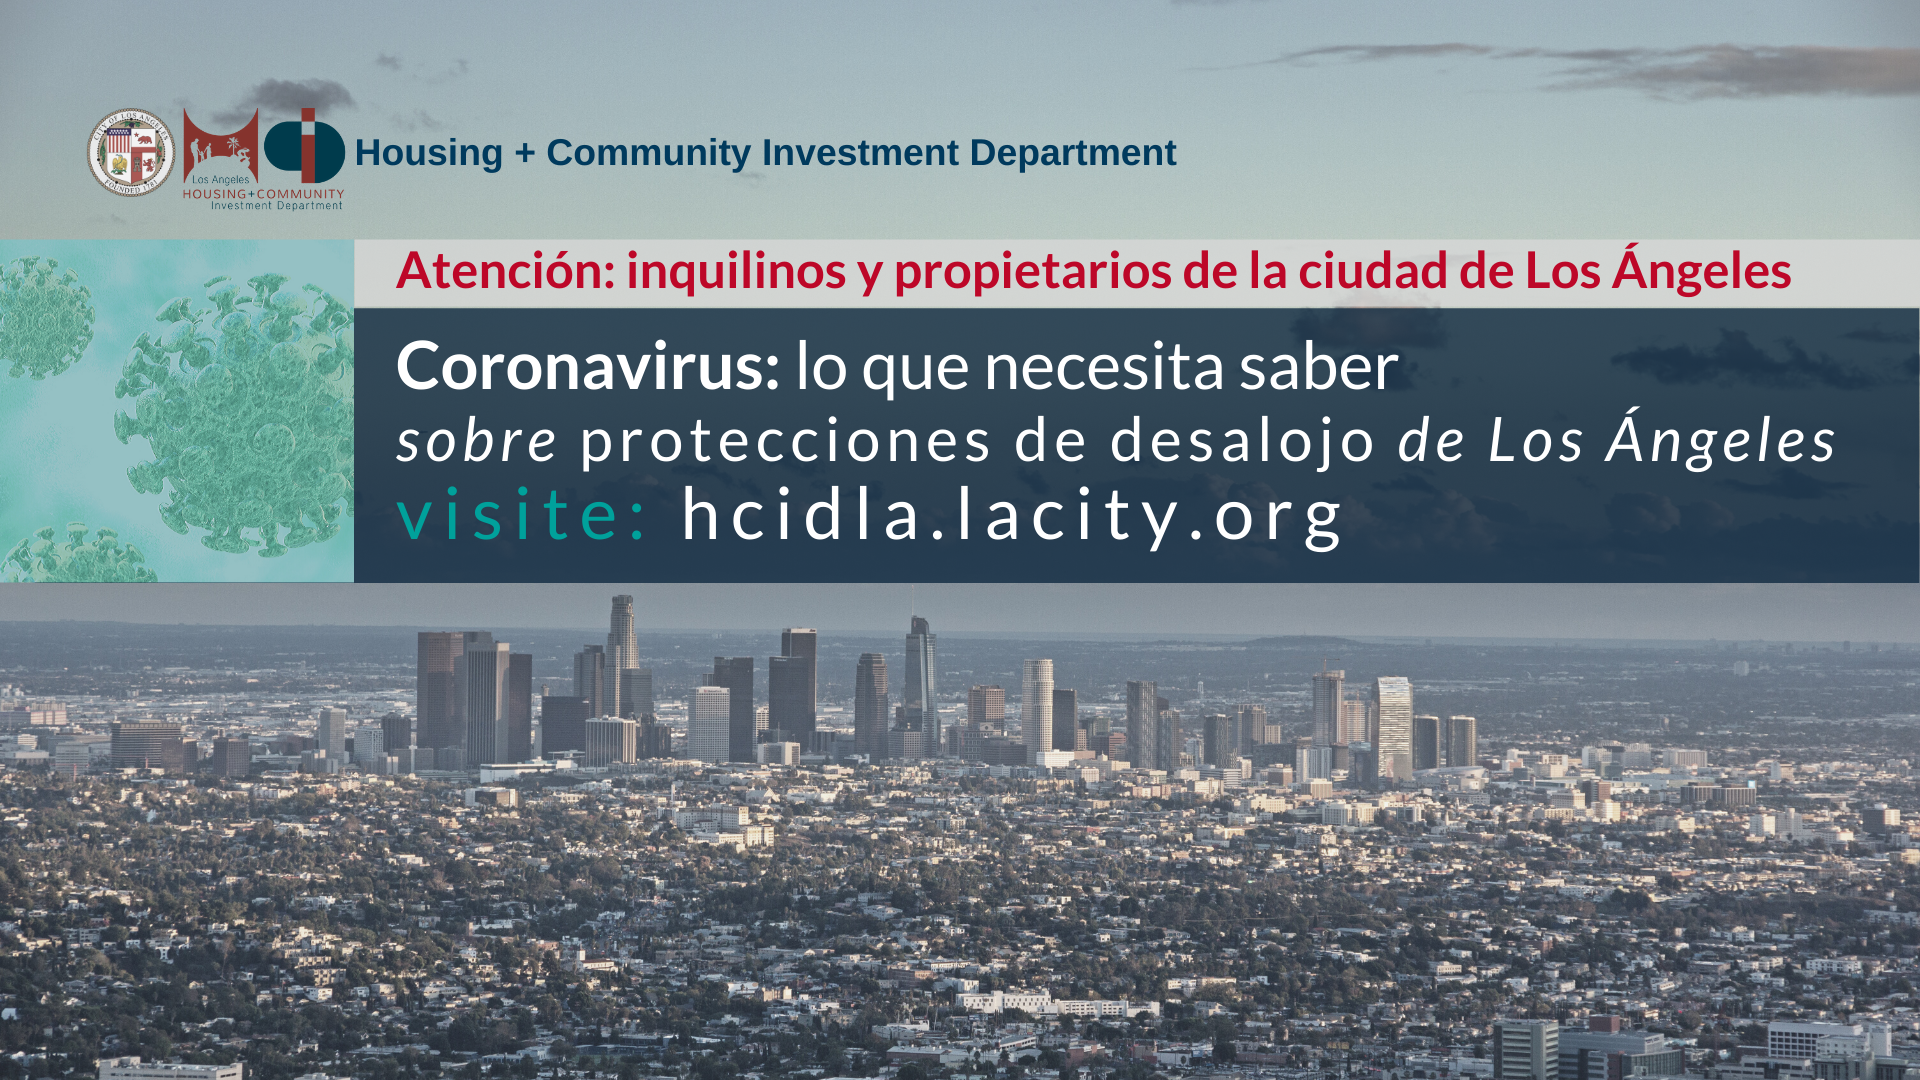 Visit hcidla.lacity.org for more information